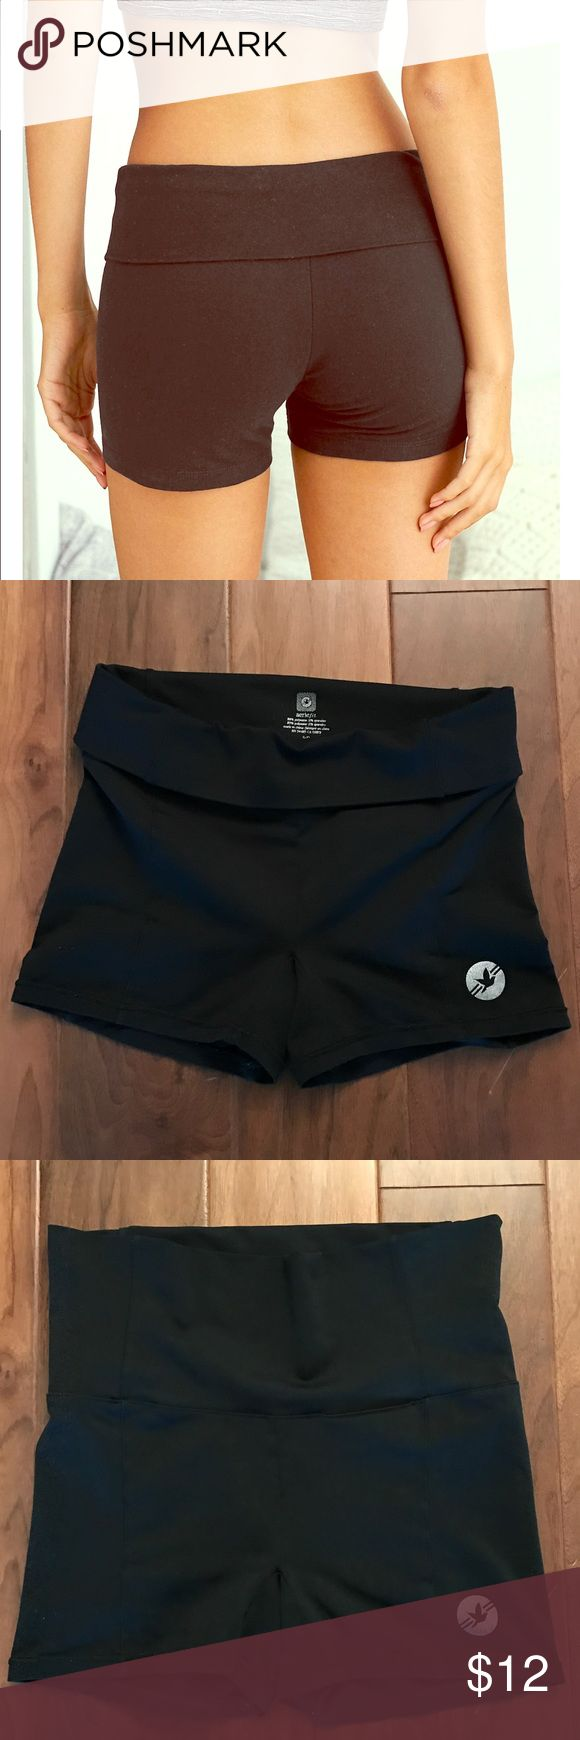 aerie fit fold over black stretch shorts, small aerie fit fold over black stretch shorts, size small. Super stretchy and comfy for working out or lounging. Inseam measures 3.5 inches. aerie Shorts